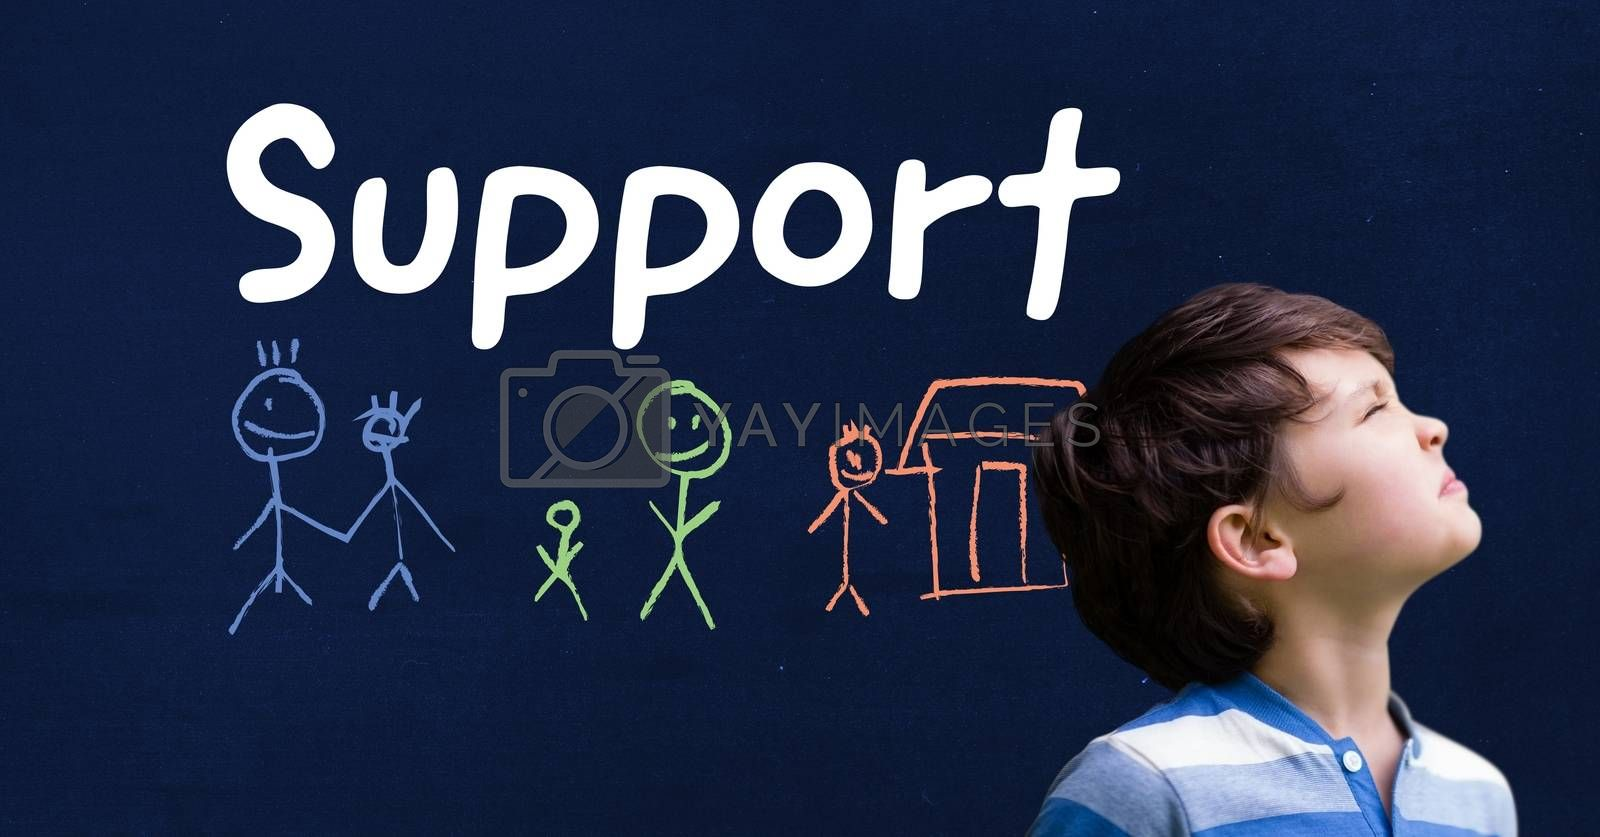 Digital composite of Boy and Support text with stick people family drawings on blackboard